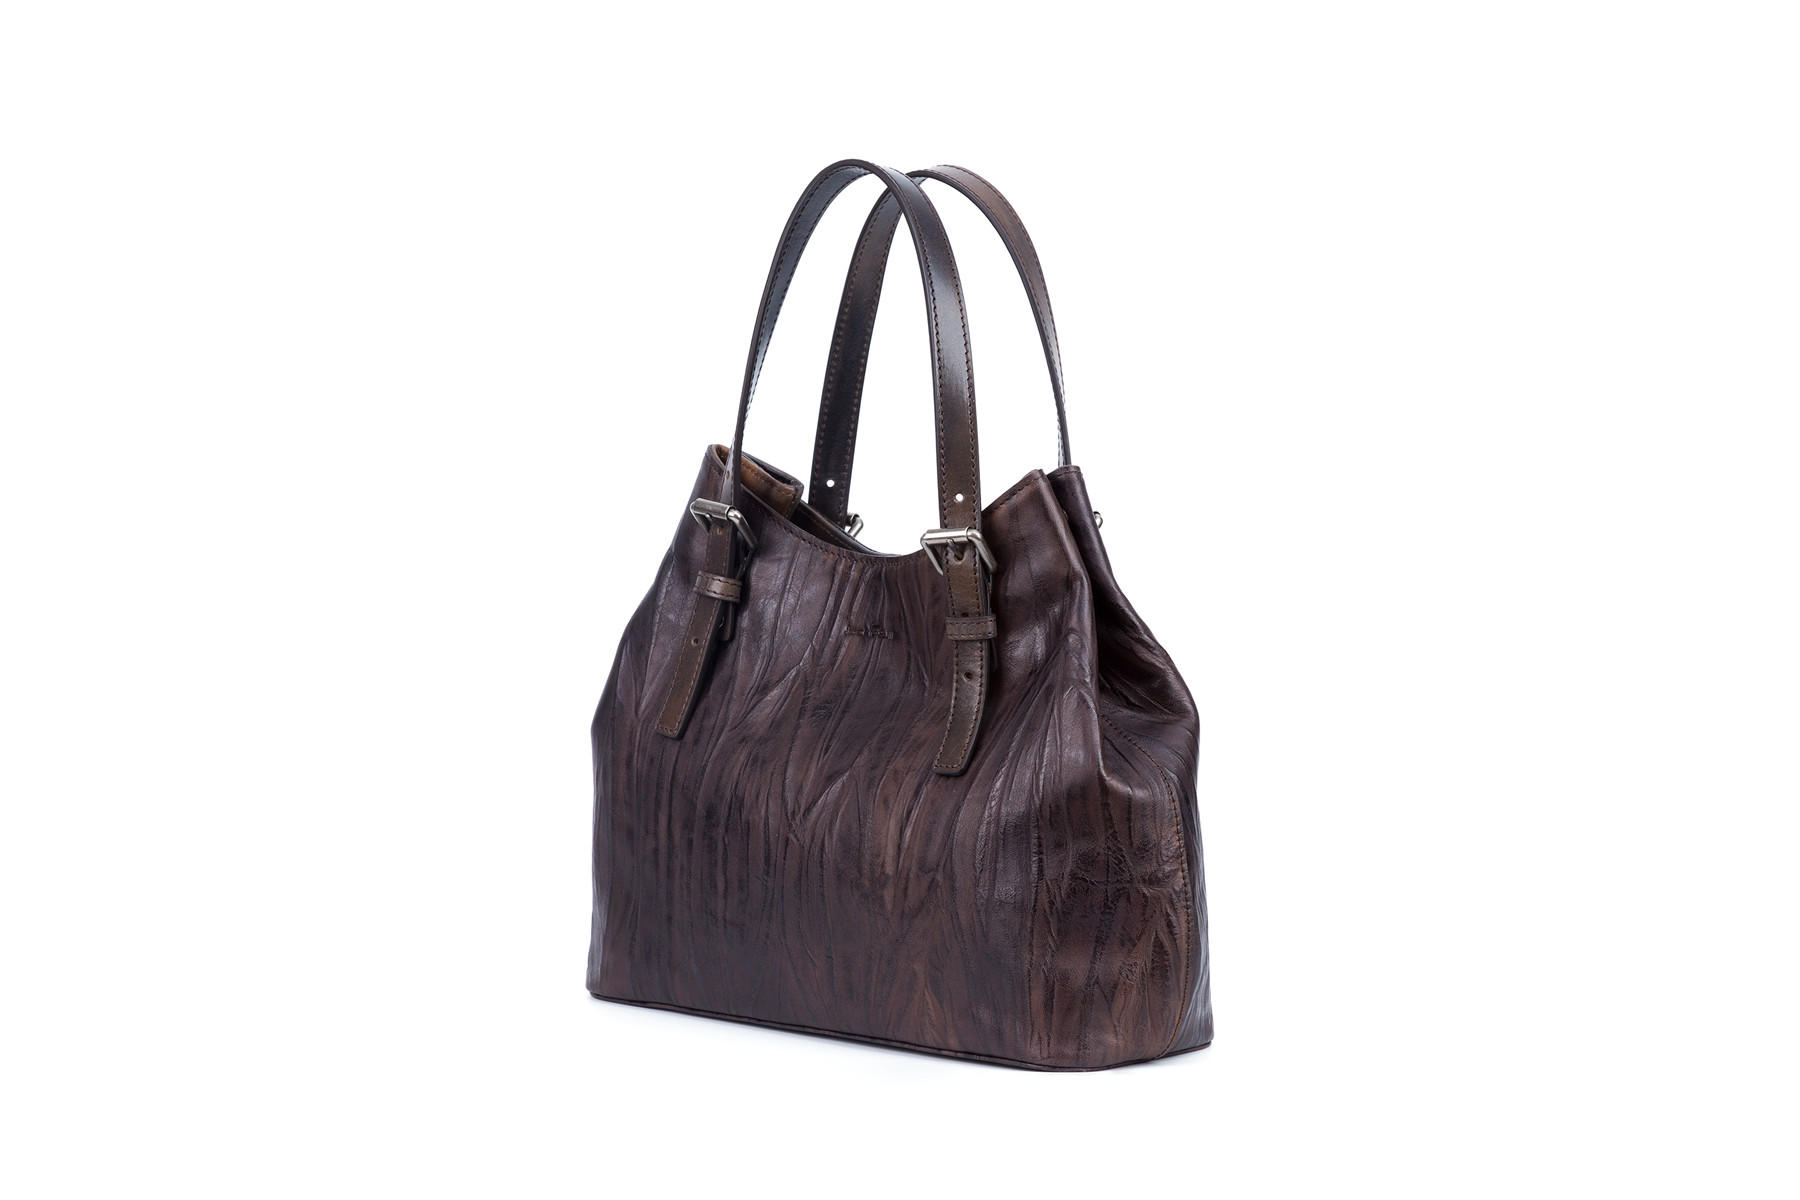 GF bags weaving ladies bag zipper for women